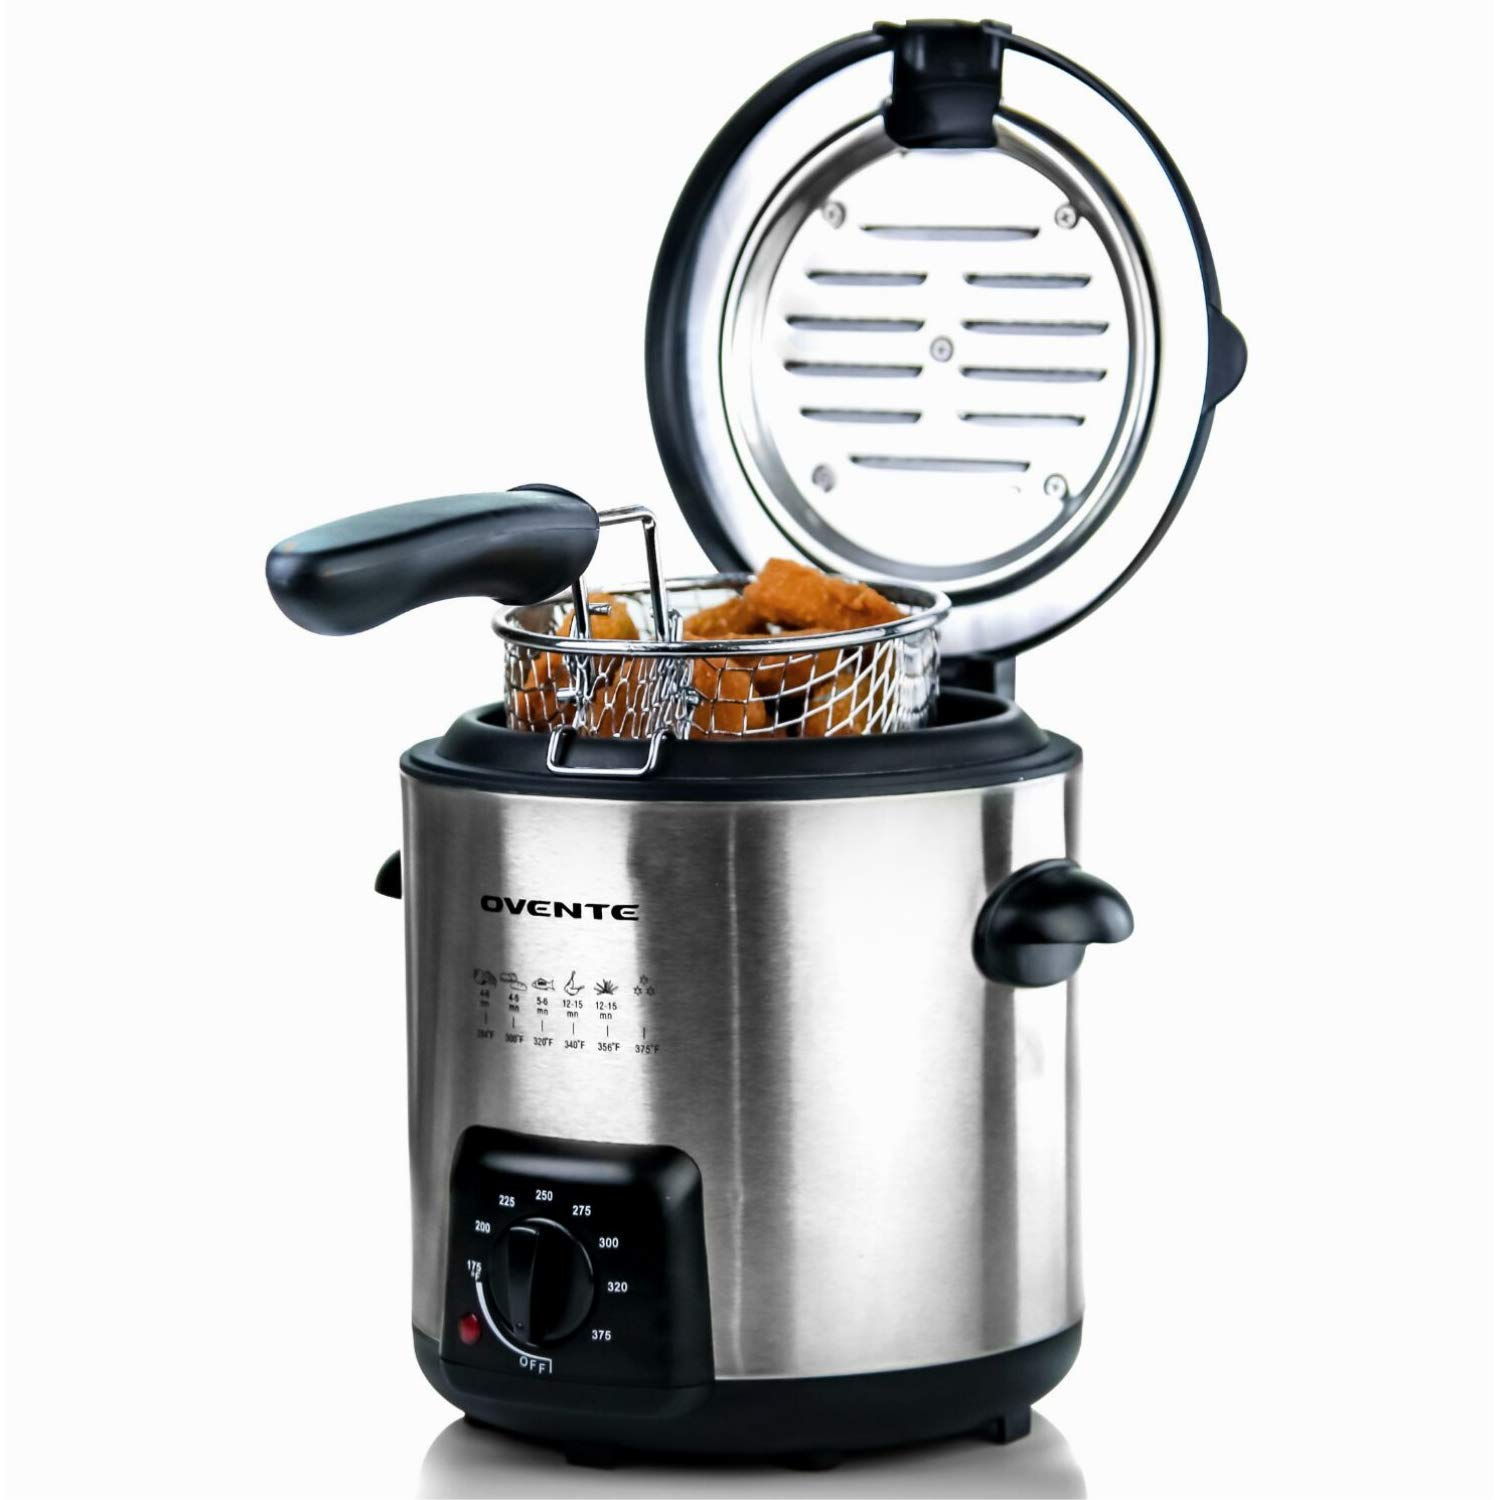 Ovente FDM1091BR Mini Deep Fryer with Removable Basket, 0.9L, Stainless Steel, Adjustable Temperature Control, Non-Stick Interior, Personal Size, Nickel Brushed by Ovente